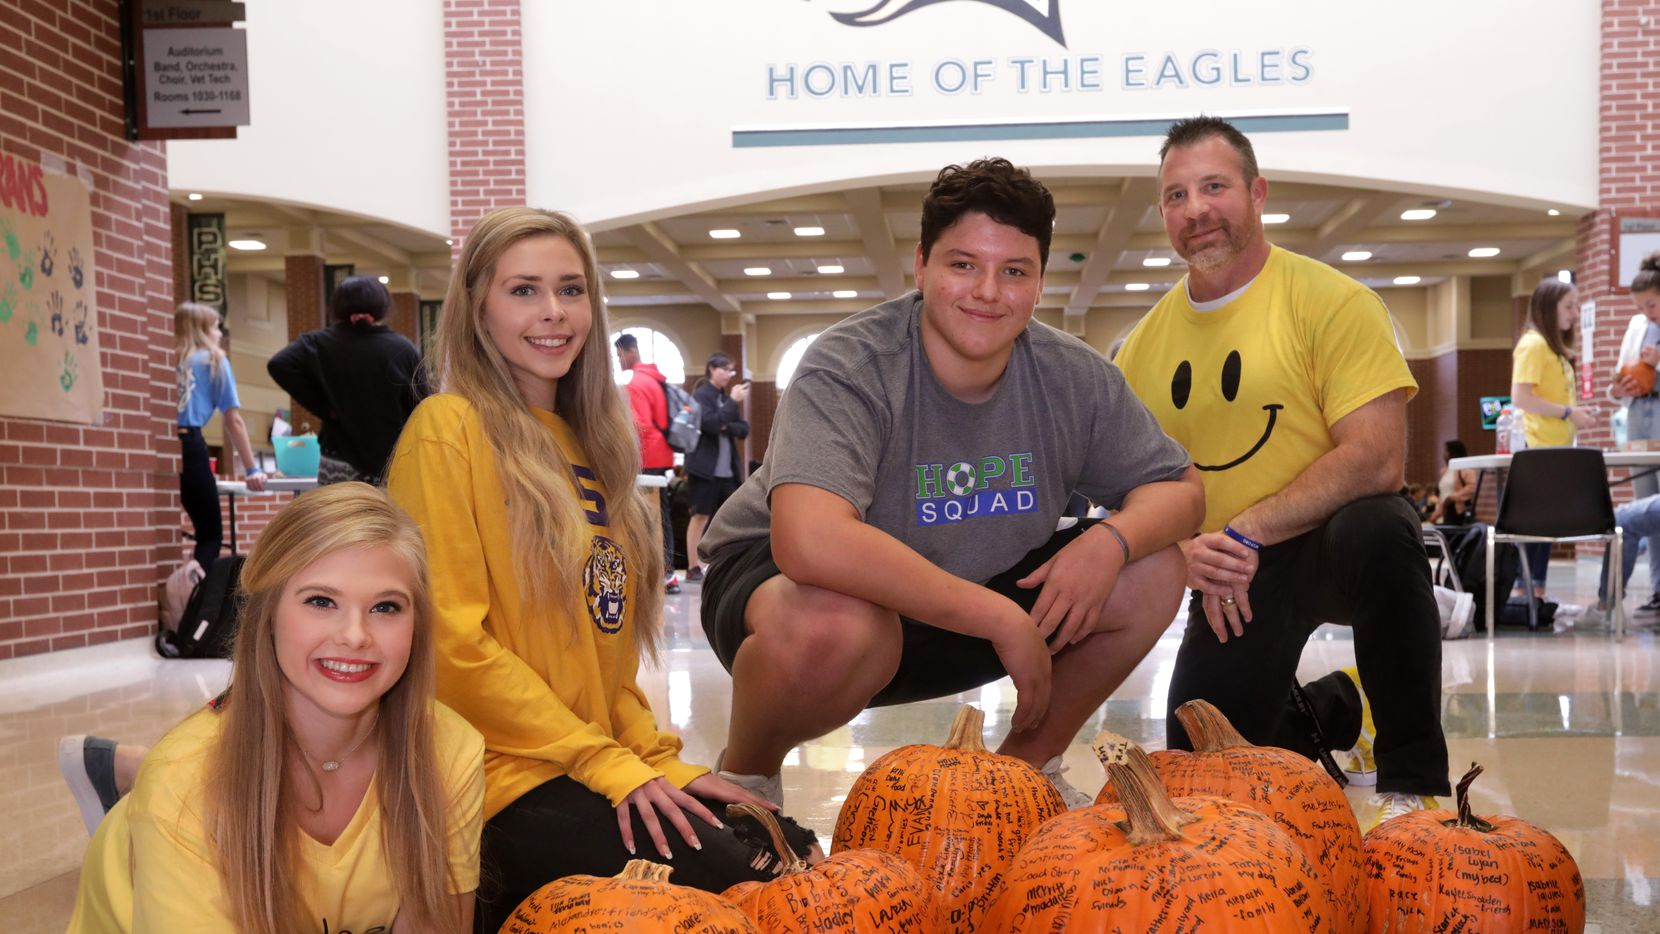 From left, Hope Squad members McKinley Bownds, Brooke McBride, Grehson Coates and teacher Tony Cooper at Prosper High School with a few of the pumpkins that students across the campus have signed as part of a thankfulness exercise.